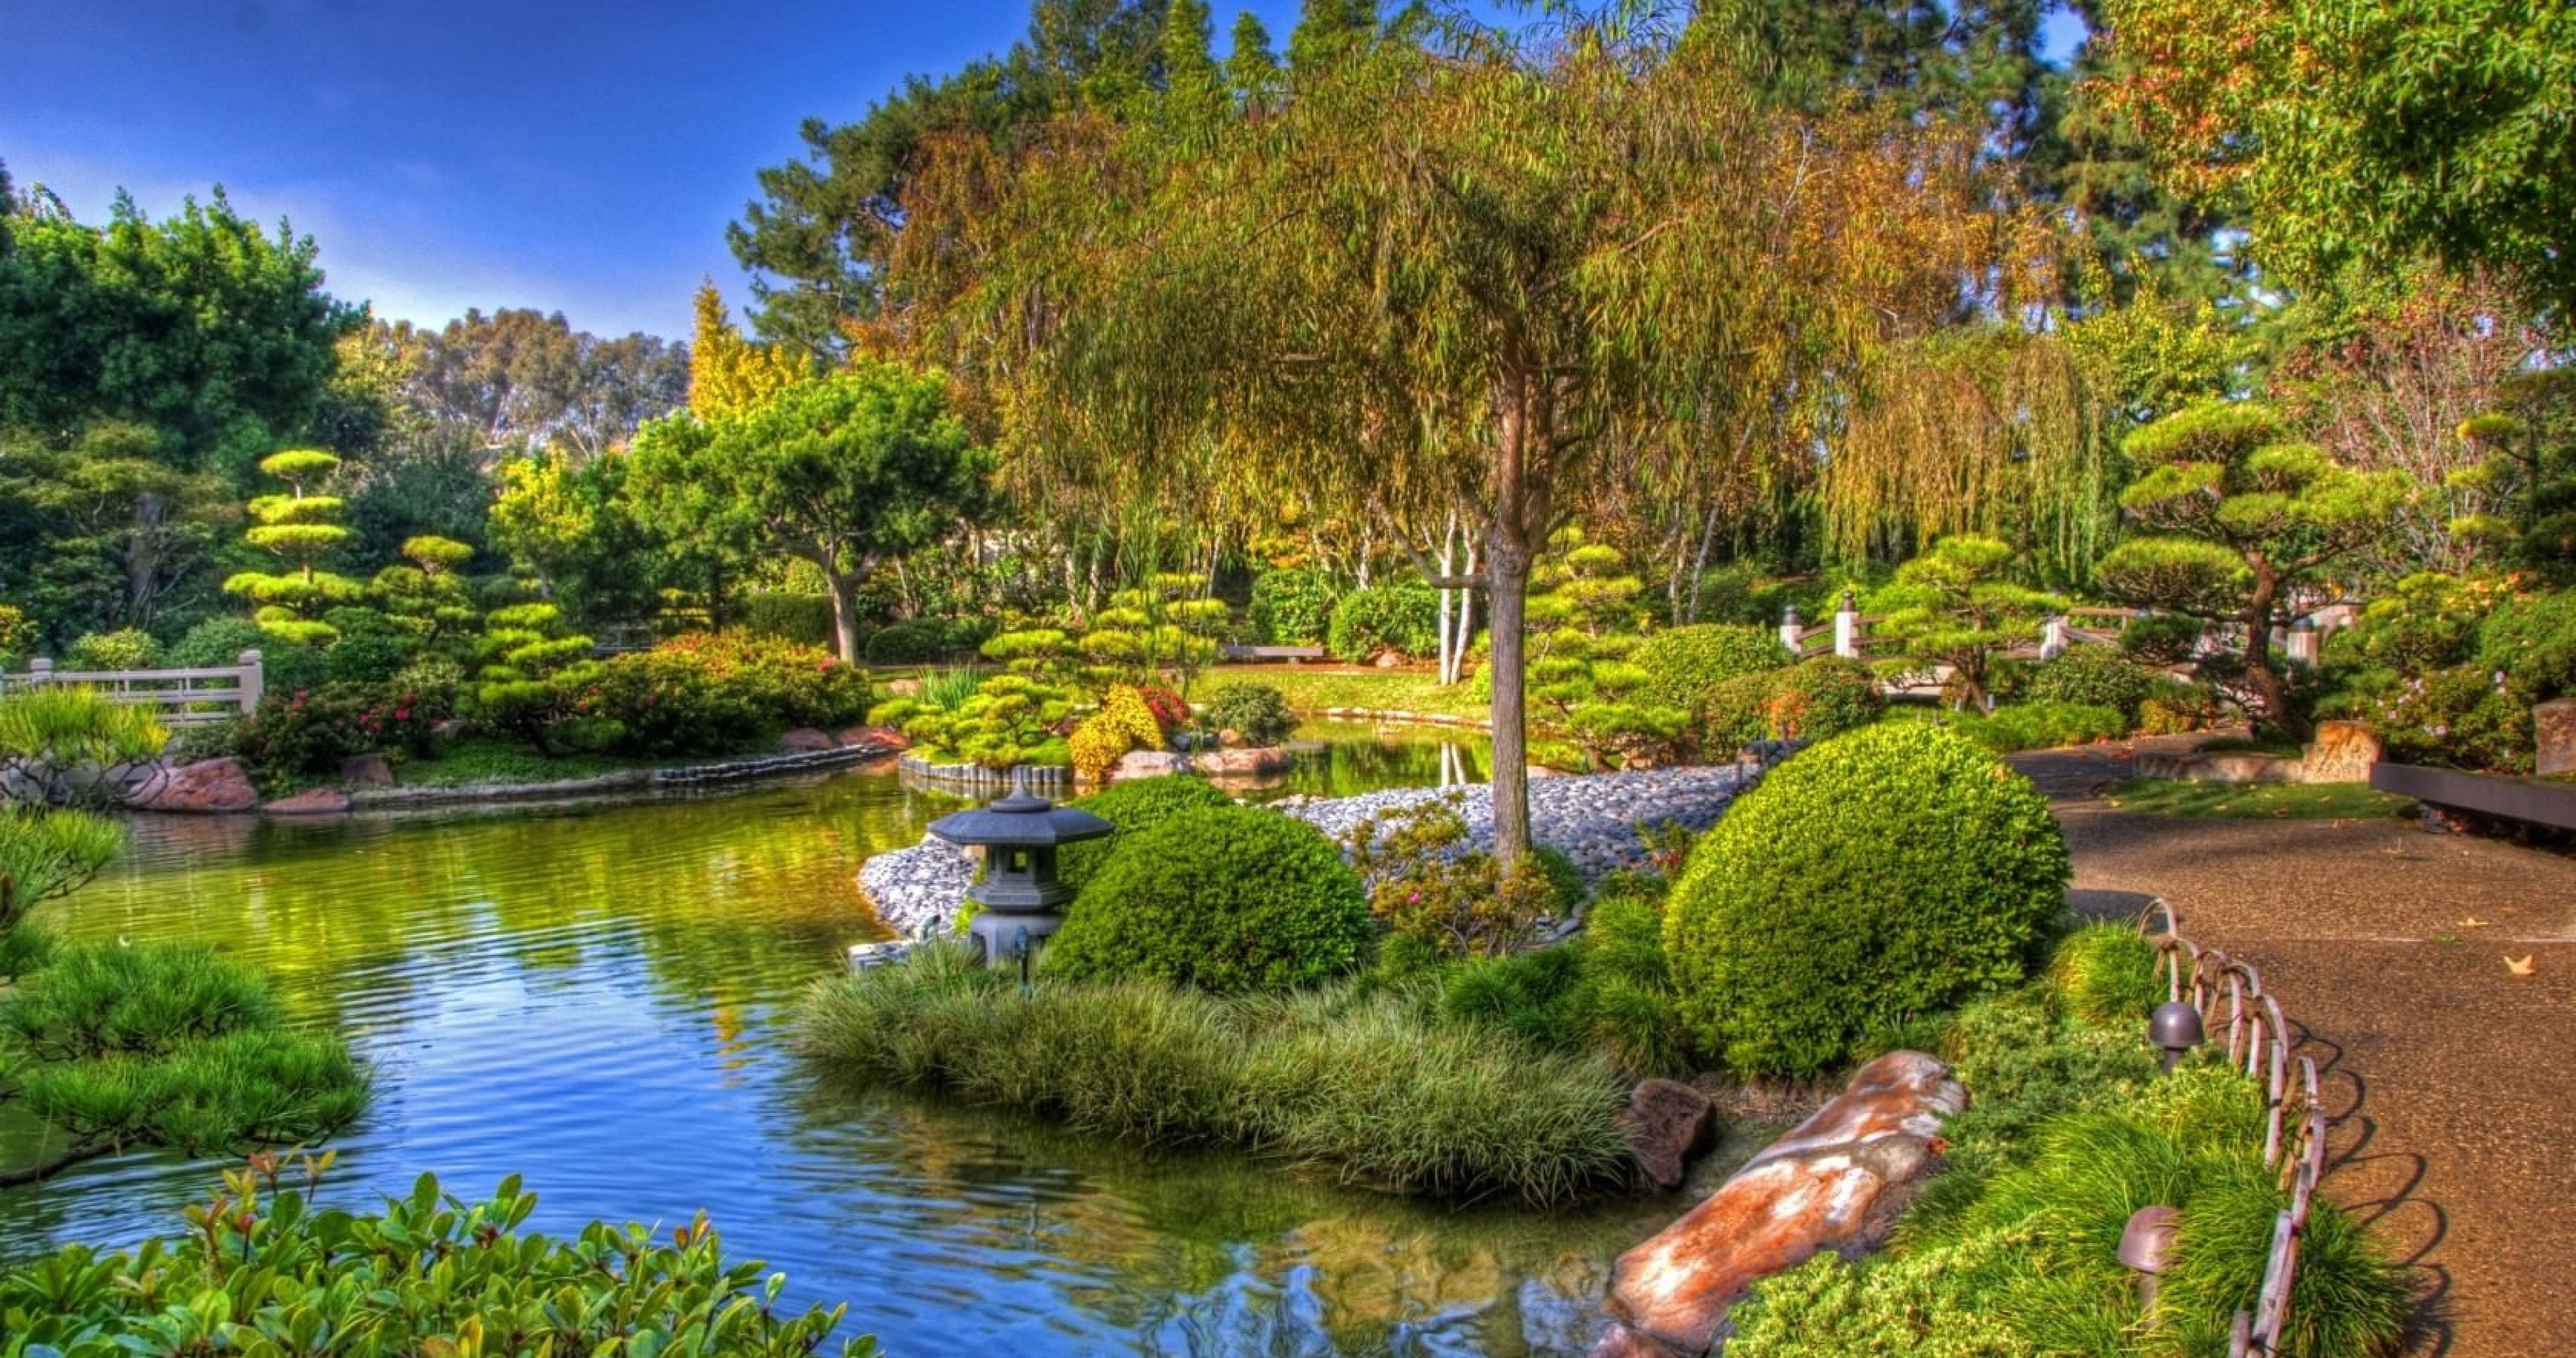 Japanese Garden Wallpapers: Earl Burns Miller Japanese California 4k Ultra Hd